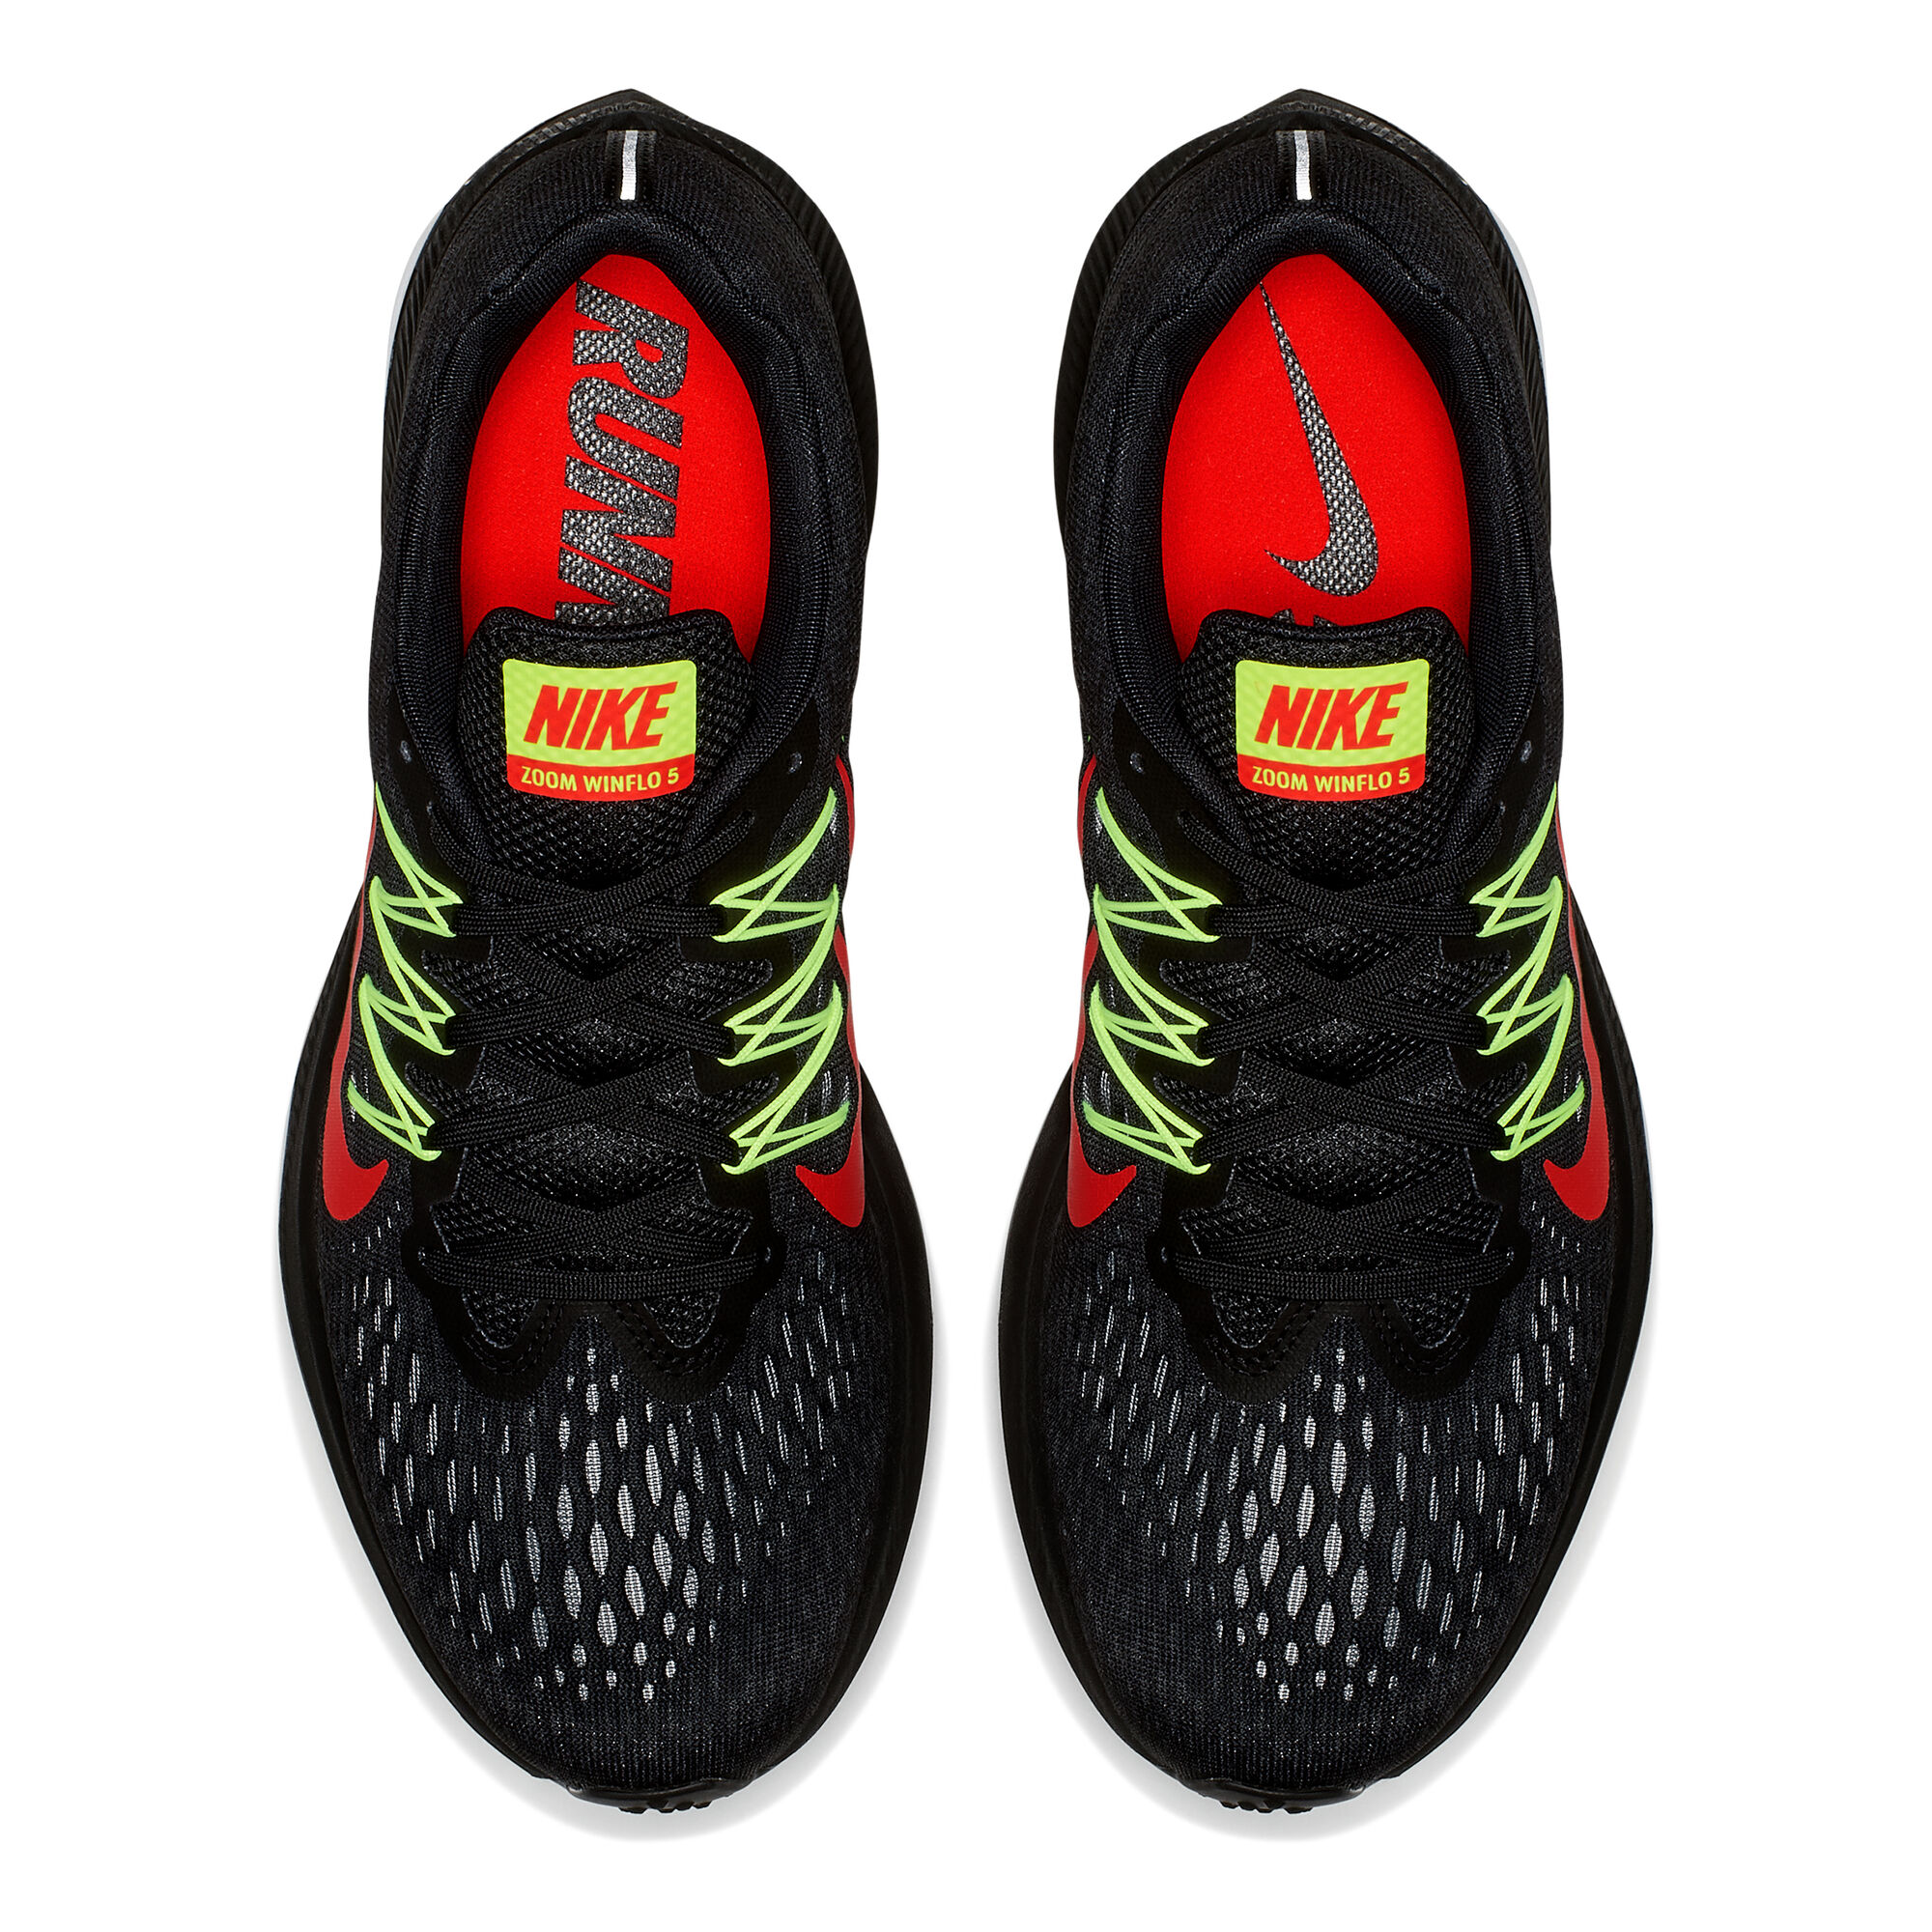 quality design d8c65 fe84e buy Nike Zoom Winflo 5 Men - Black, Neon Green online ...